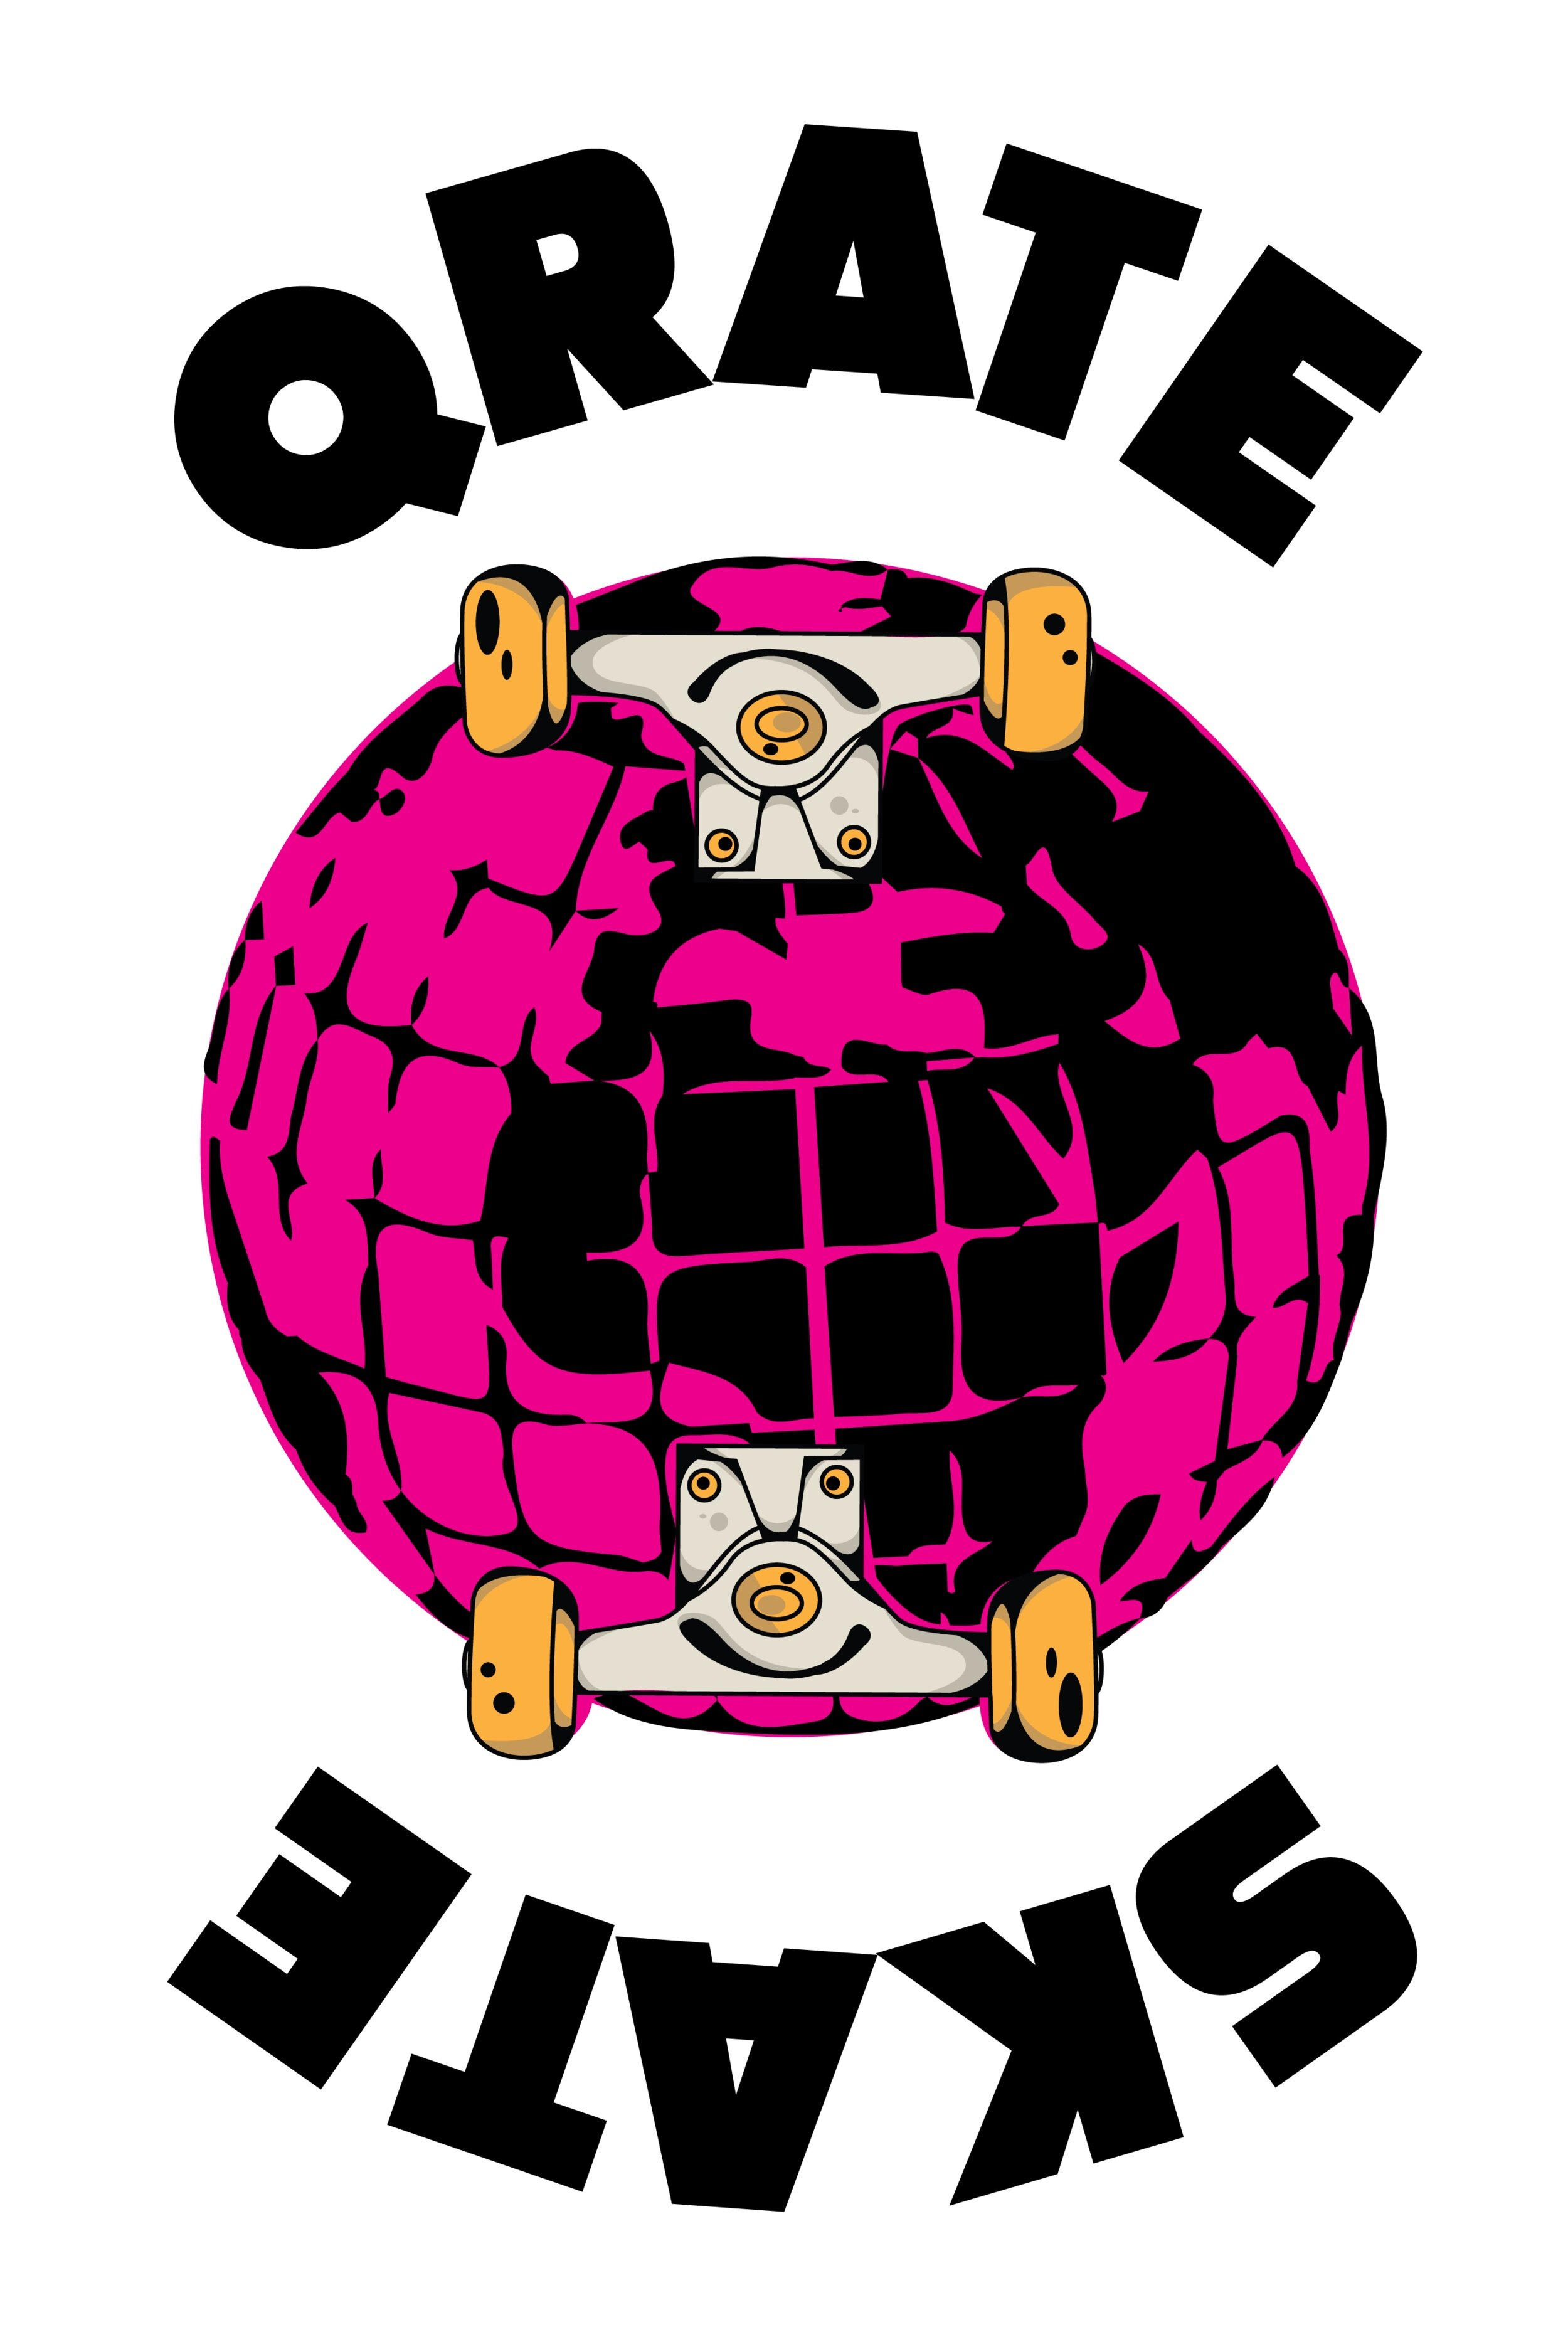 QRATE SKATE - JANUARY 2020QRATE SKATE is a multi-channel, multi-brand fashion retailer. QRATE SKATE will also bring you the stories behind brands. Exclusive interviews with top action sports athletes, behind the scenes footage and interactive competitions.QRATE SKATE will remain dedicated to bringing our customers the best range of products from around the world together with our extensive own brand range.